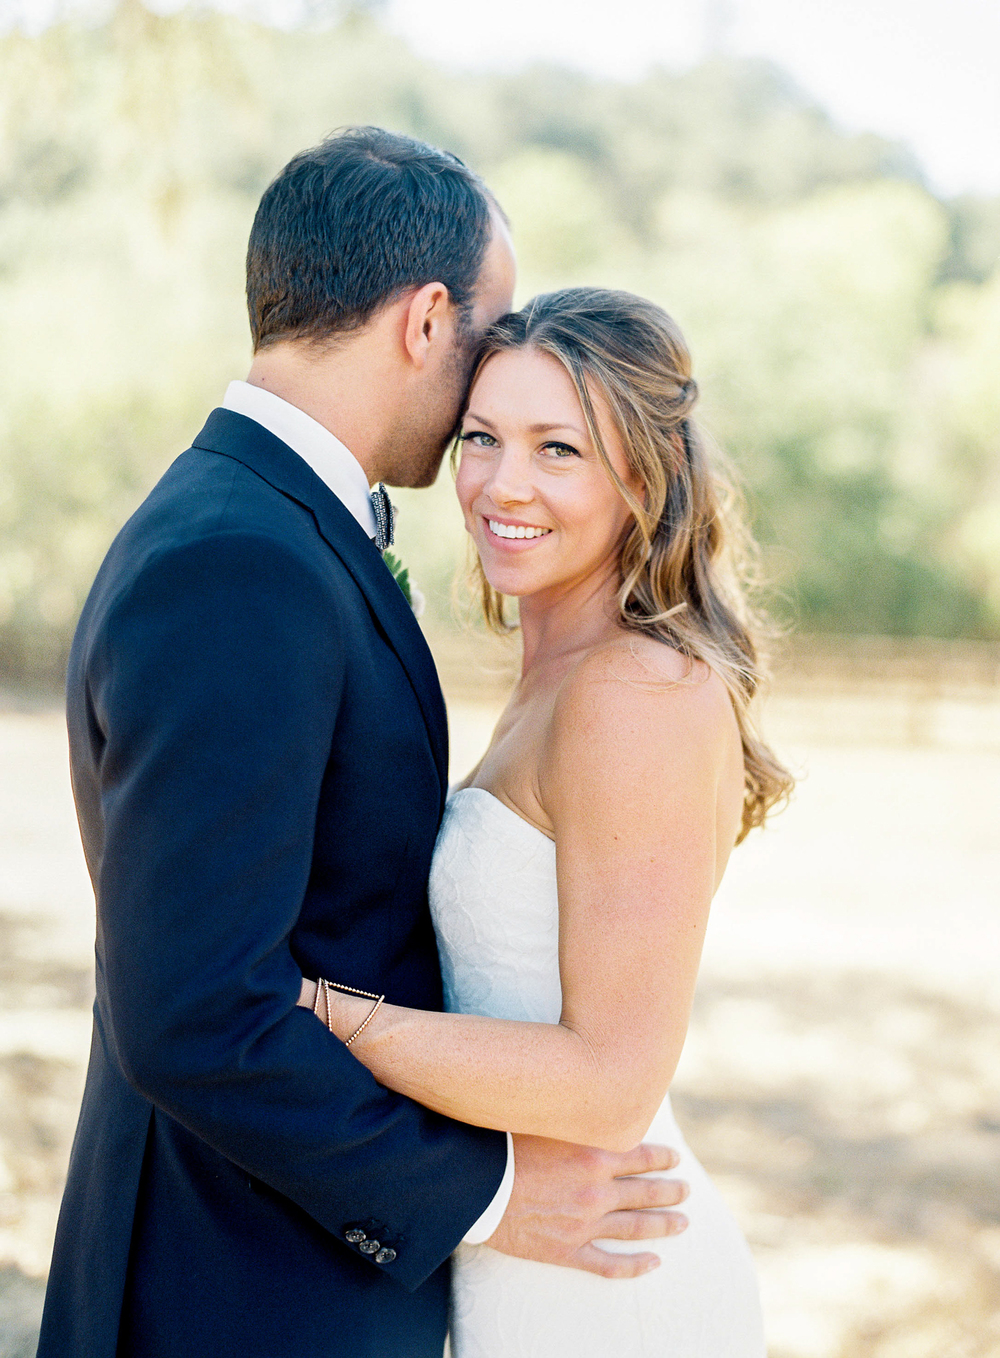 Meghan Mehan Photography - Fine Art Film Wedding Photography - San Francisco | Napa | Sonoma | Big Sur | Chicago | Minneapolis | Milwaukee | Lake Geneva | Door County | Wisconsin 052.jpg